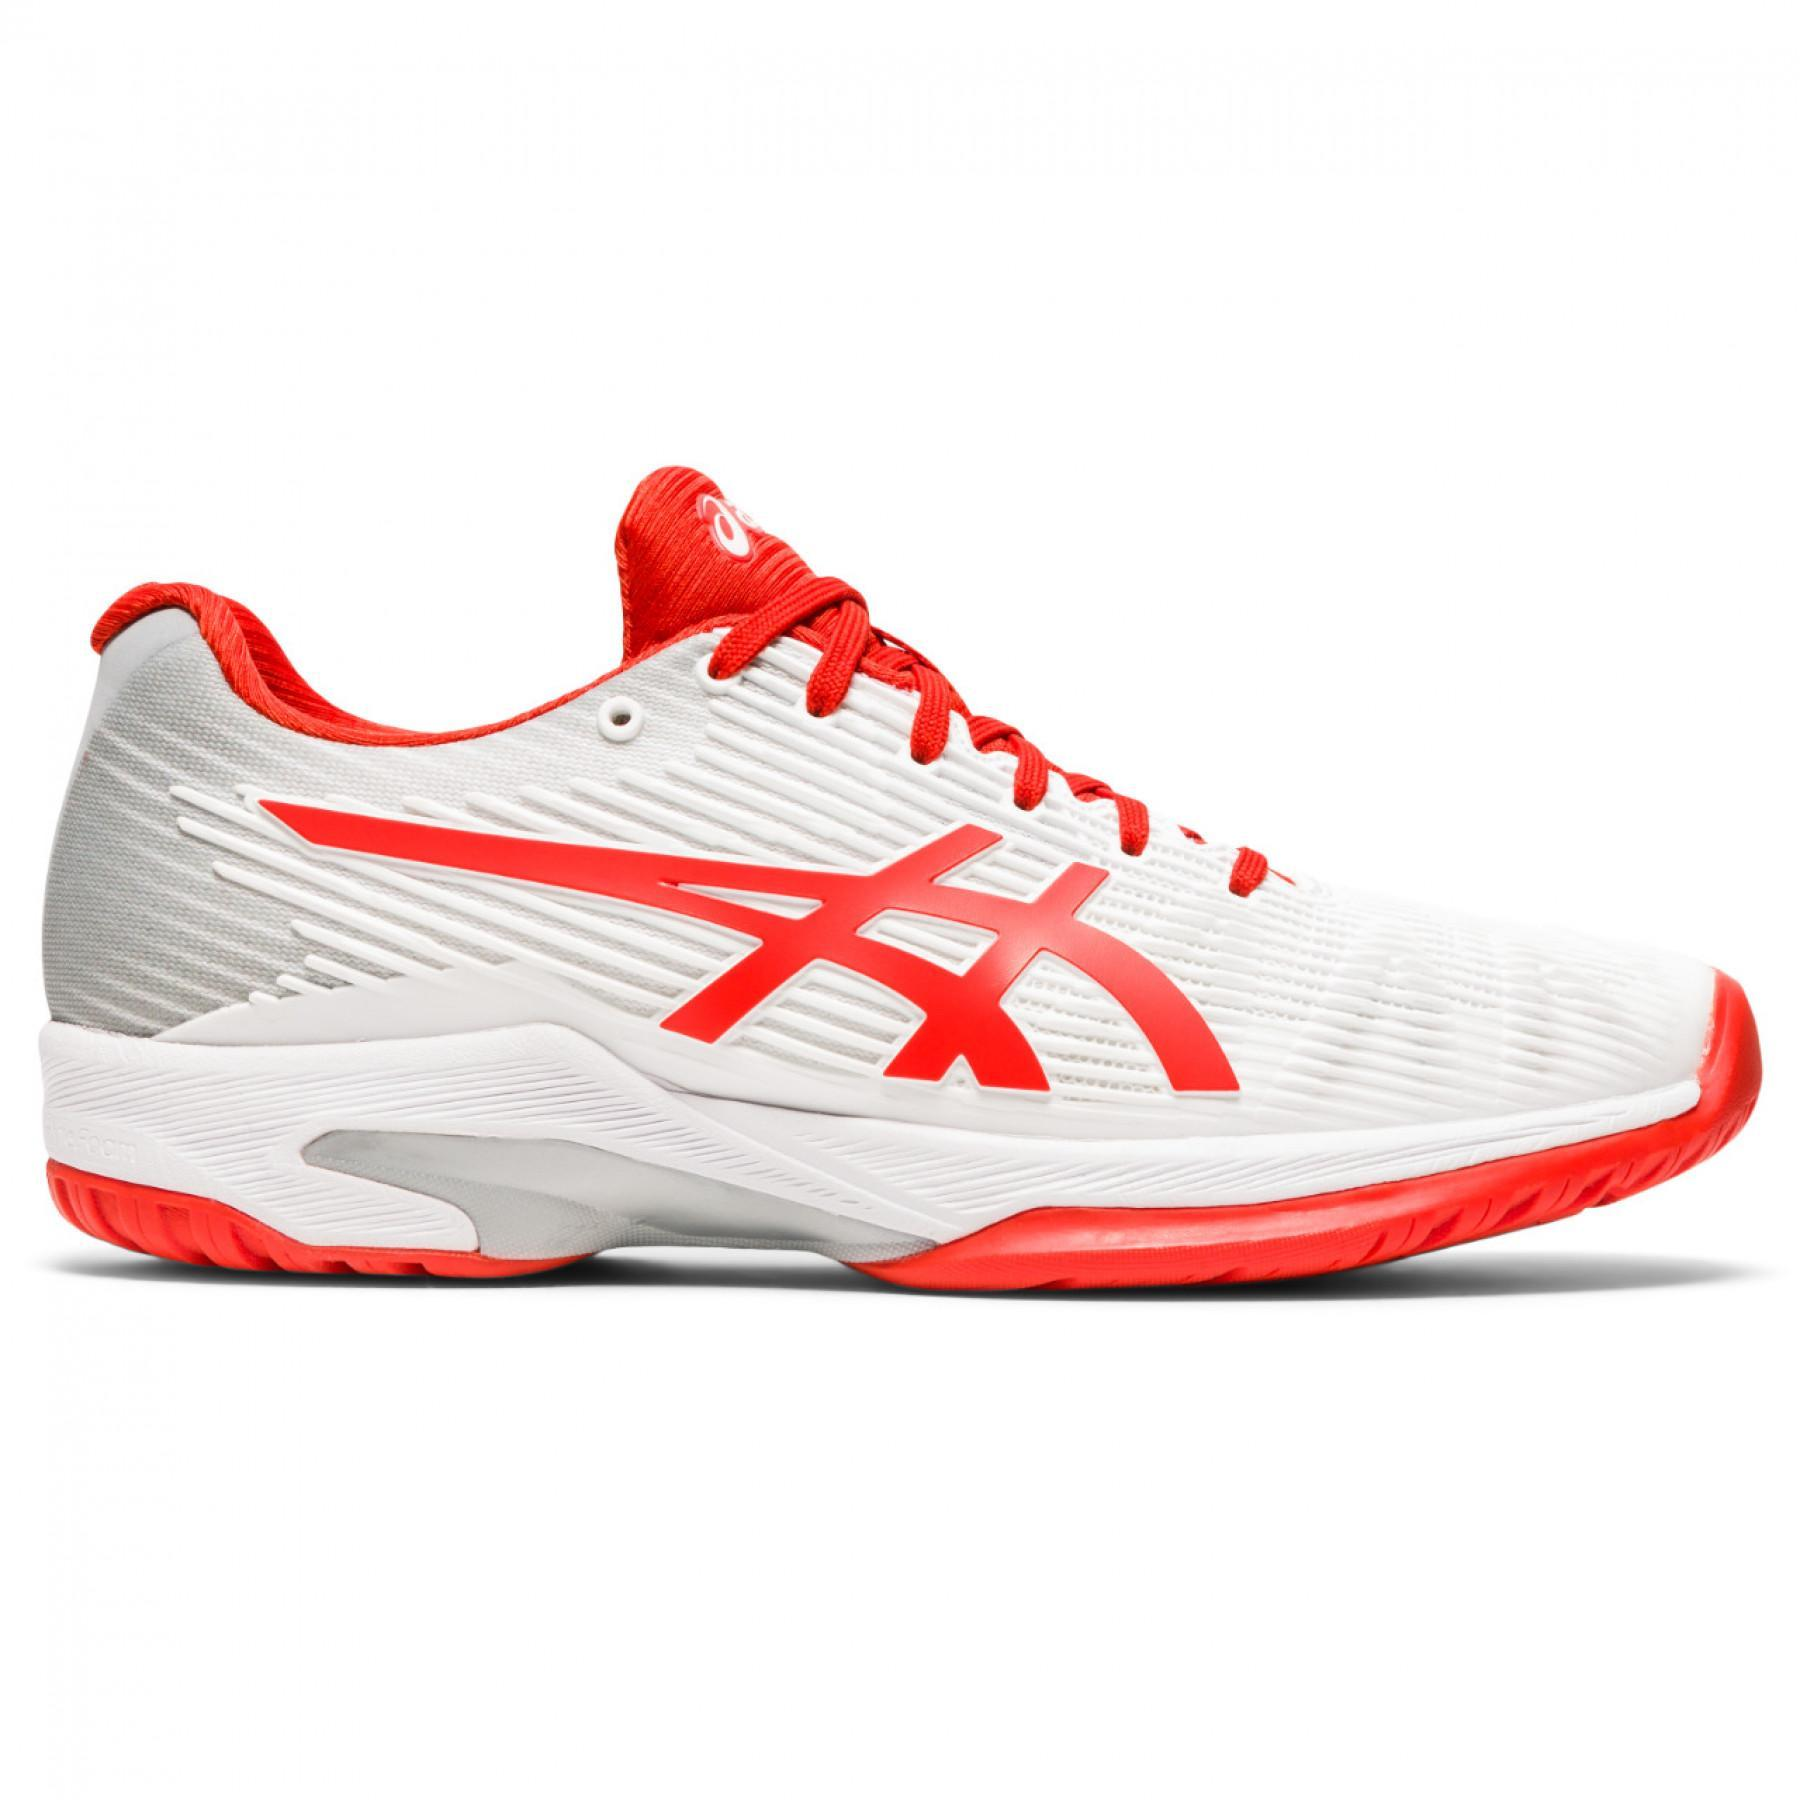 Asics Solution Speed Ff Women's Shoes